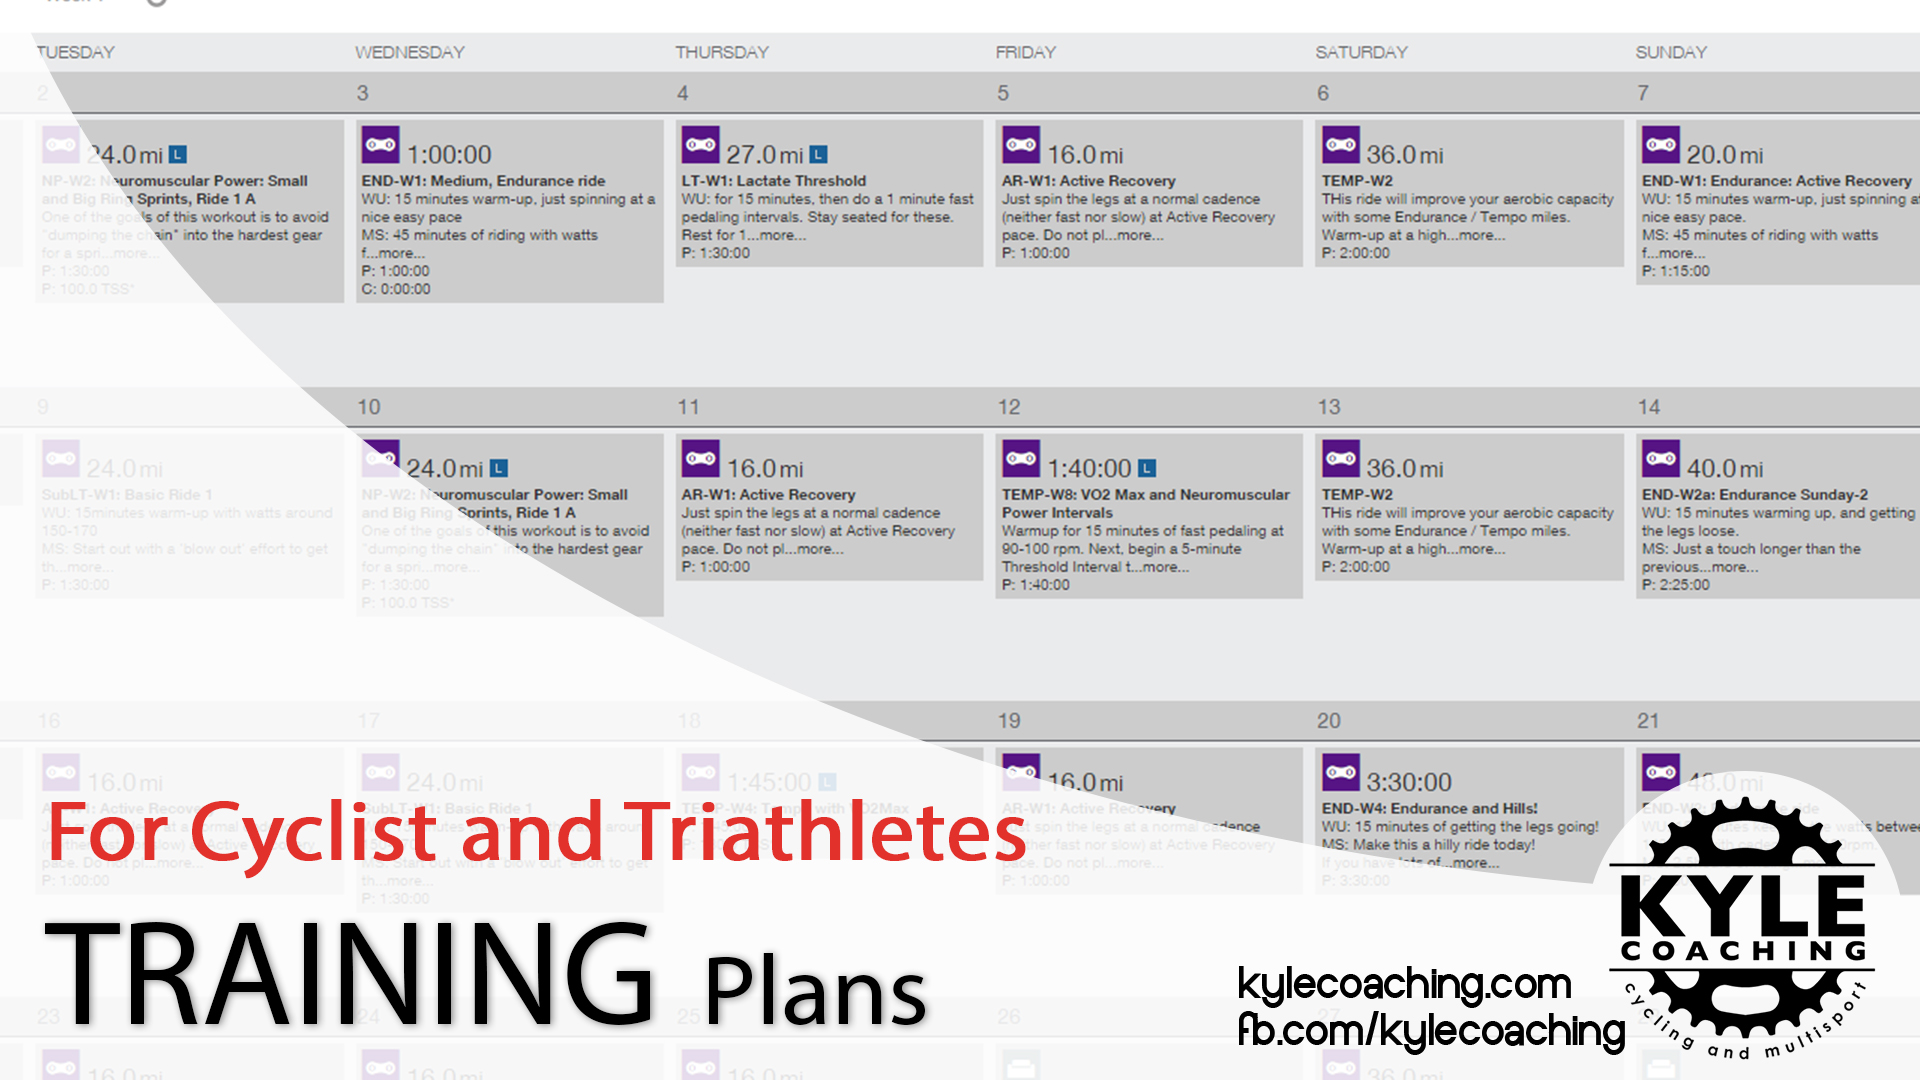 KyleCoaching training plans